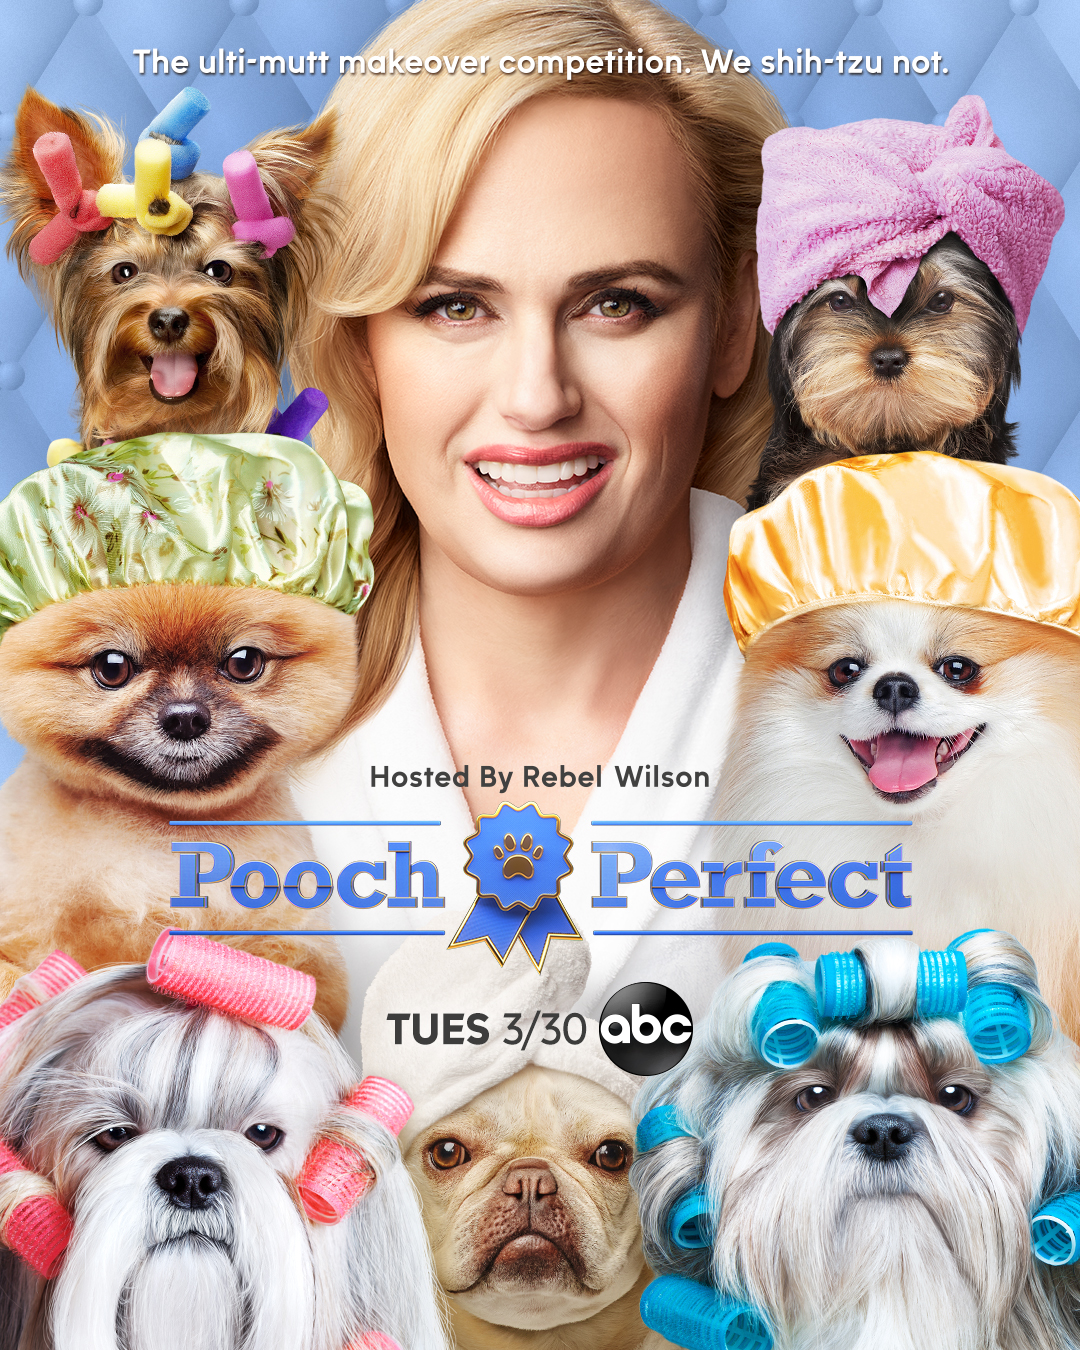 'Pooch Perfect' Dog Grooming Competition